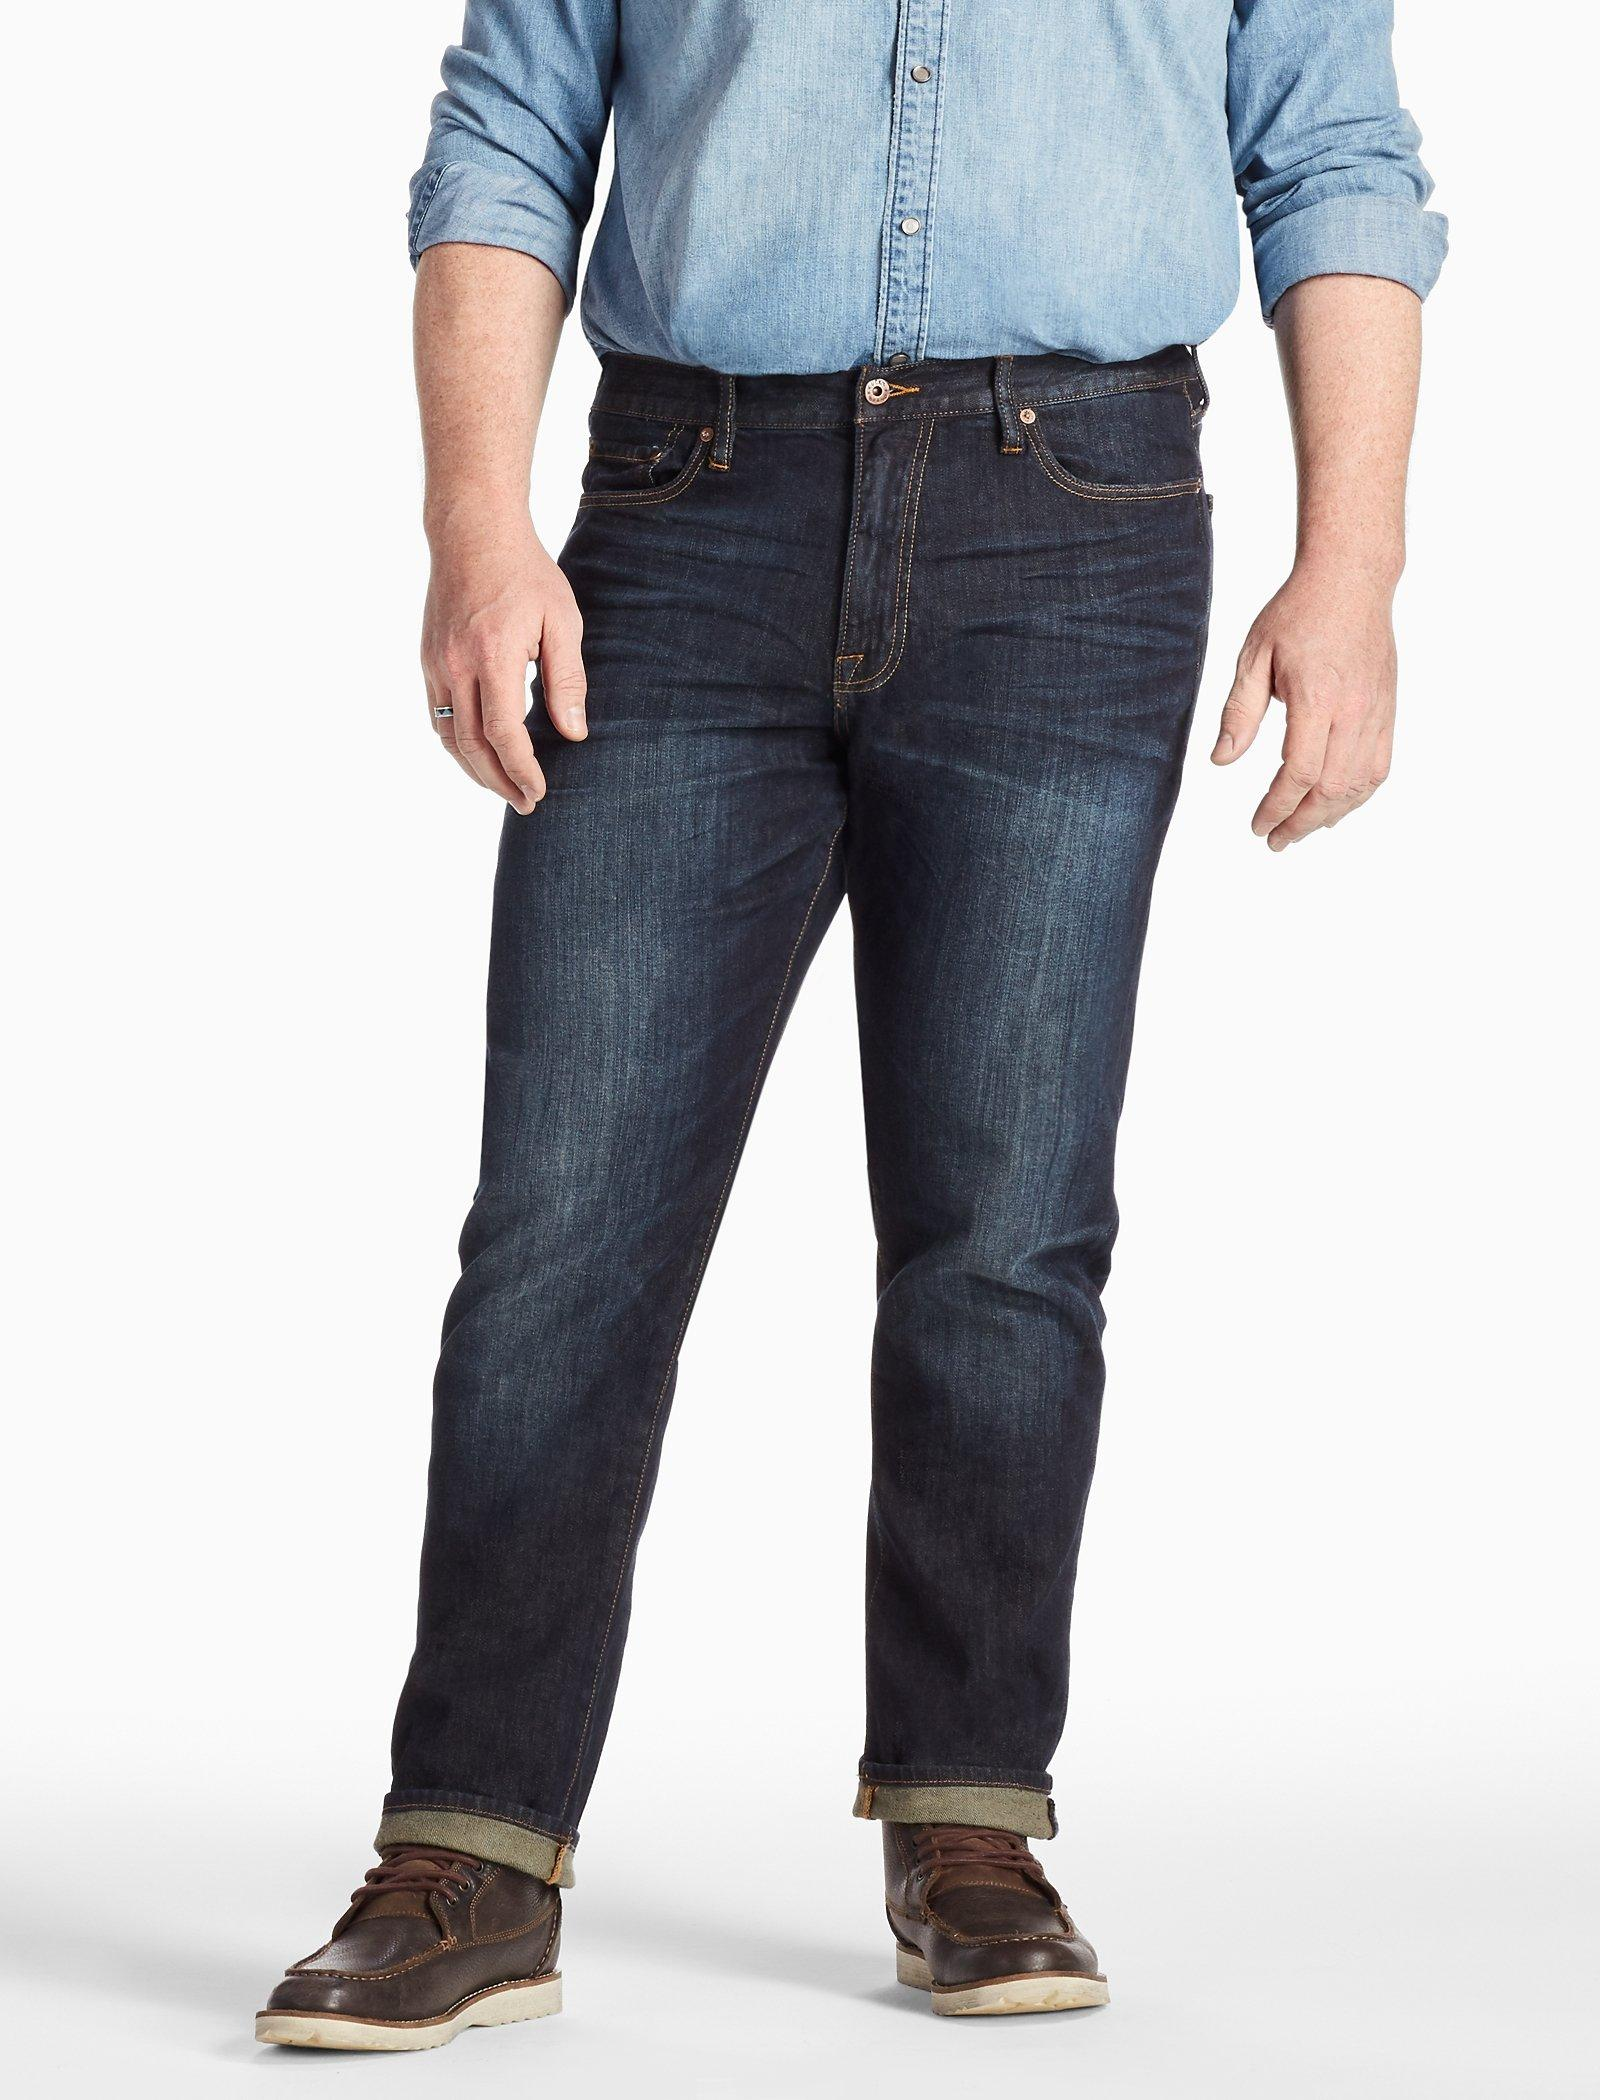 Lucky Brand Mens Big /& Tall 410 Athletic Jean in Barite Jeans